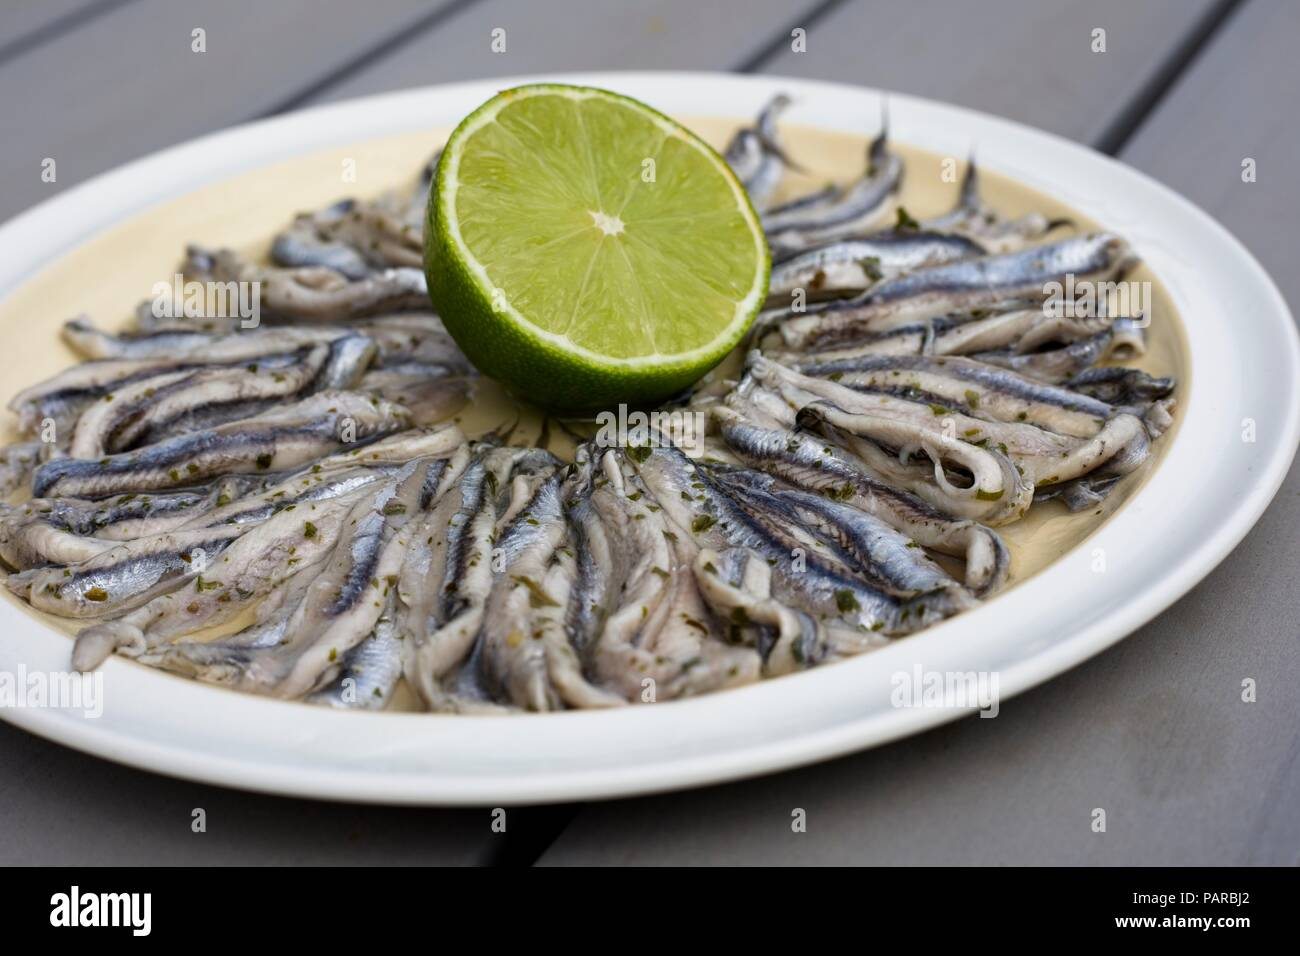 Plate of marinated anchovies, or Boquerones en vinagre, a Spanish tapas dish - Stock Image